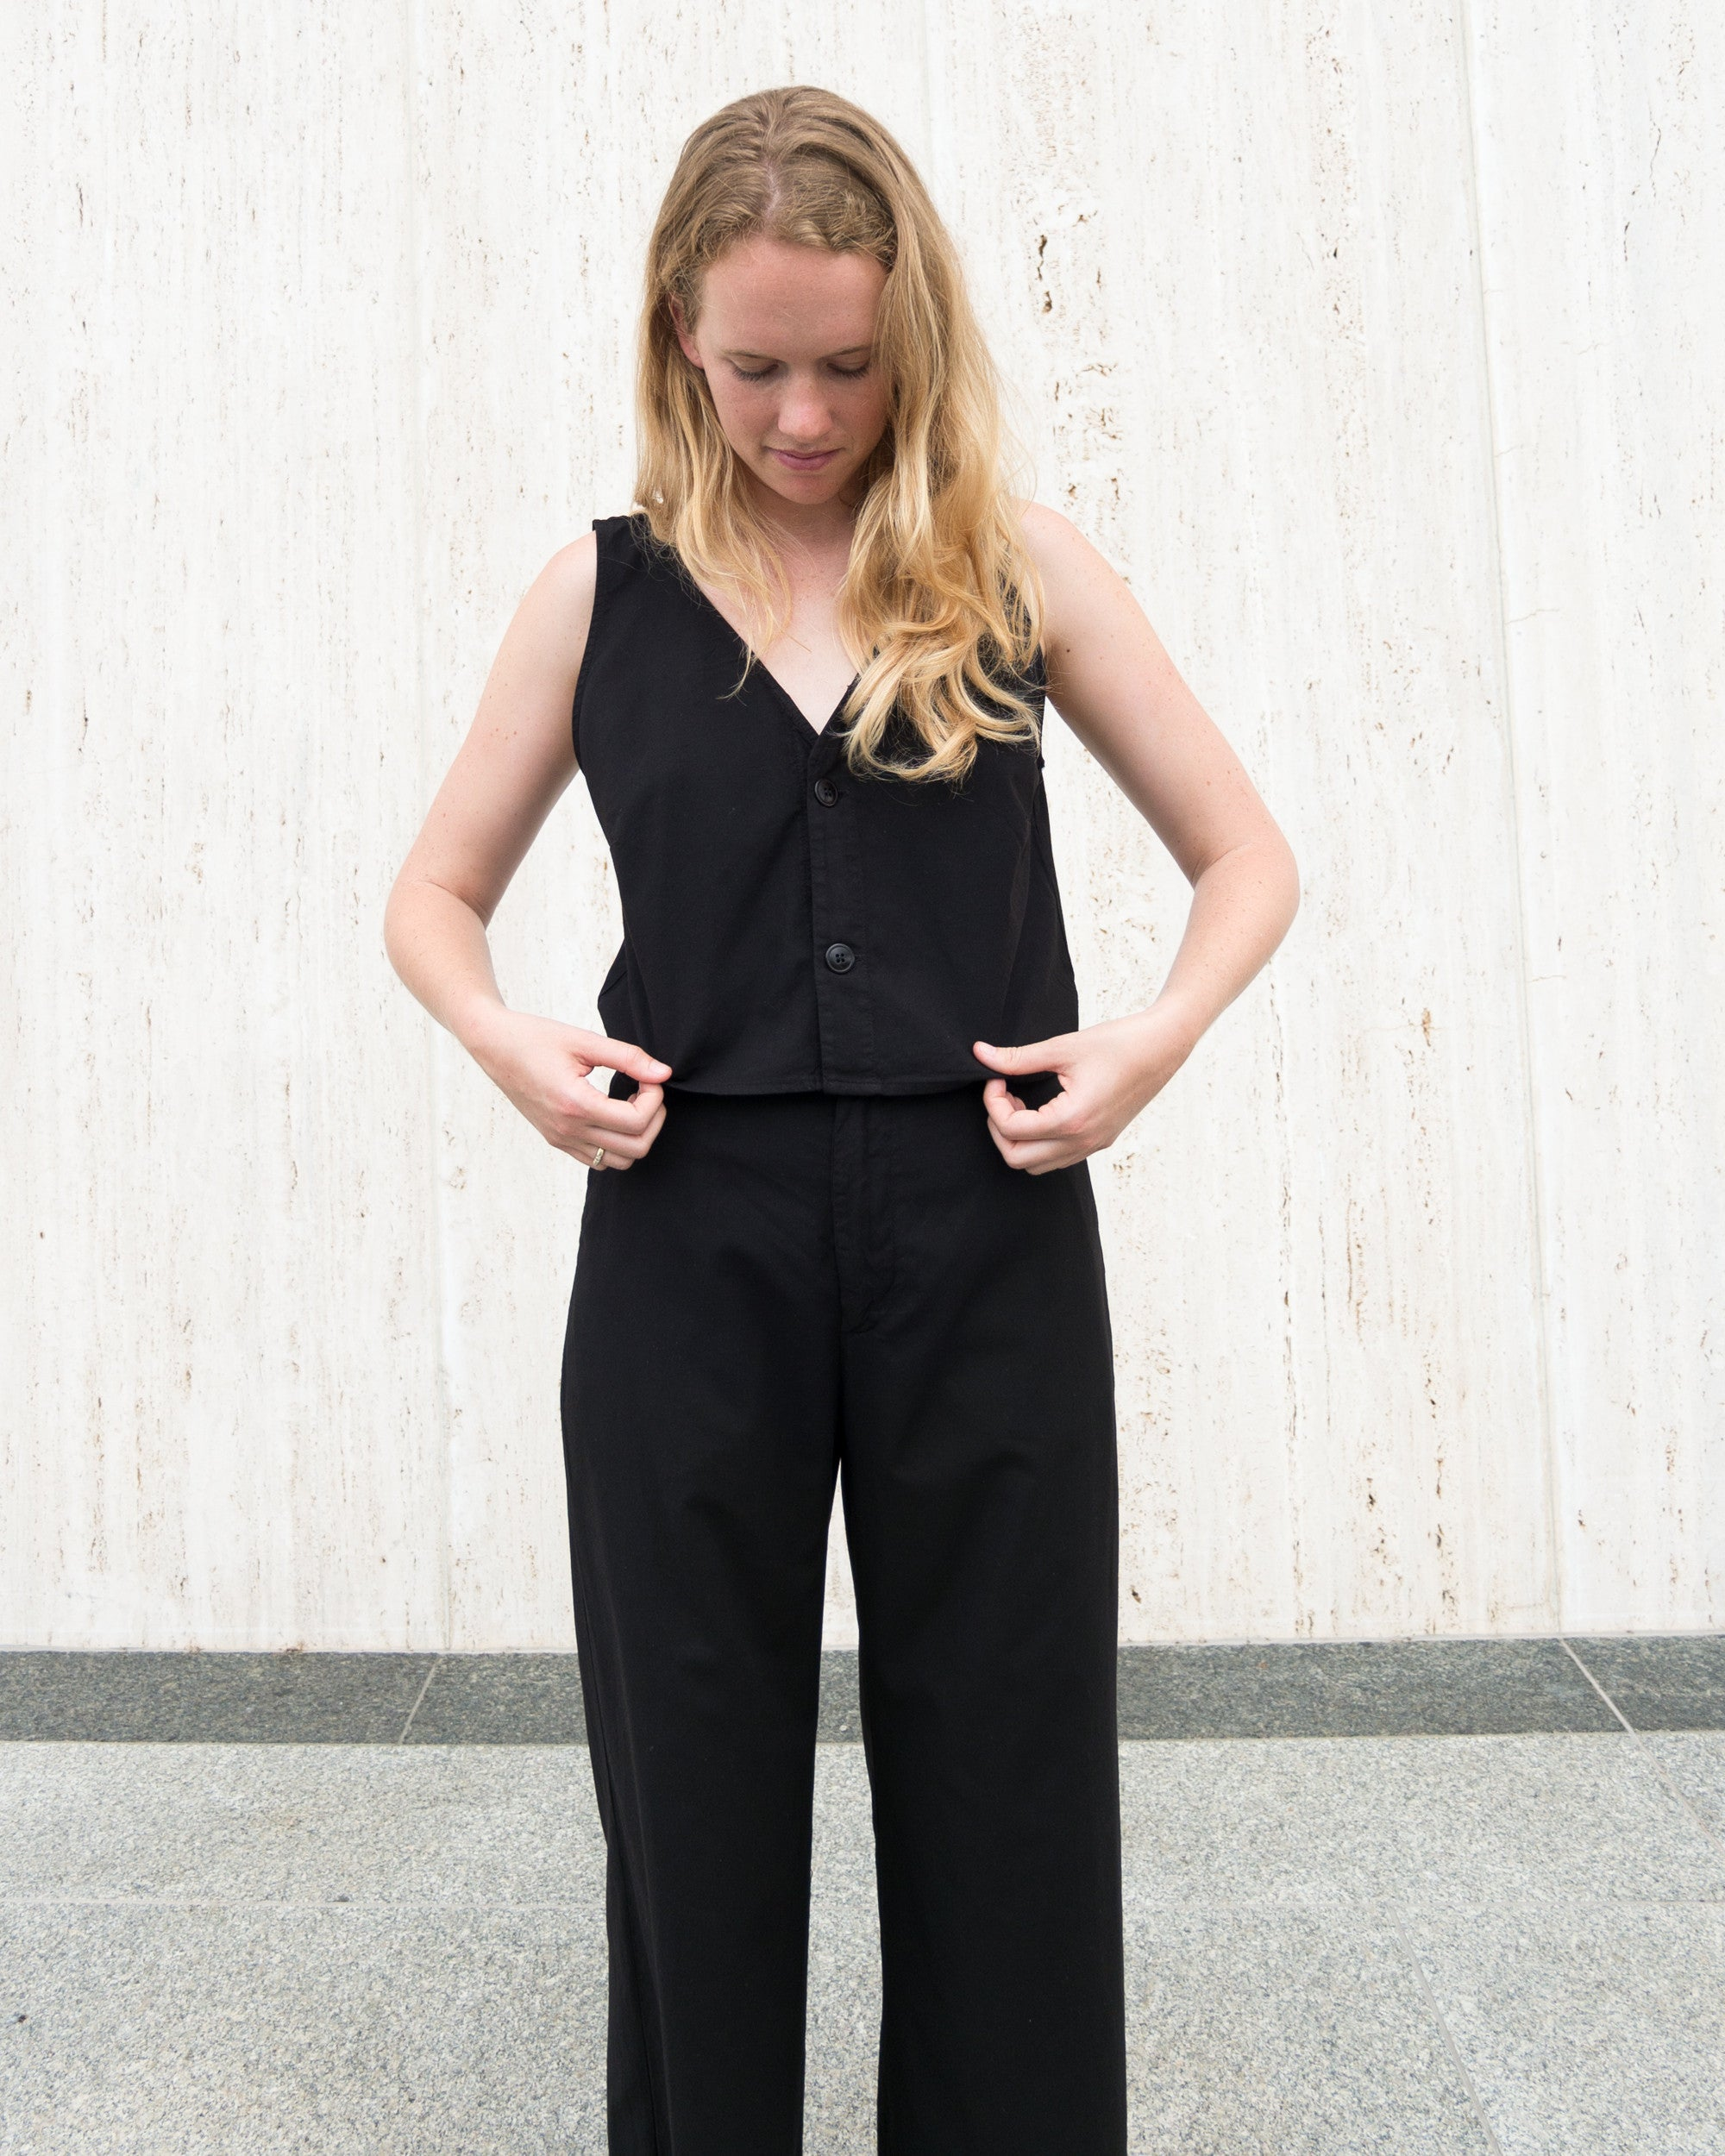 esby-apparel-womenswear-designed-in-austin-made-in-usa-taly-two-piece-jumper-black